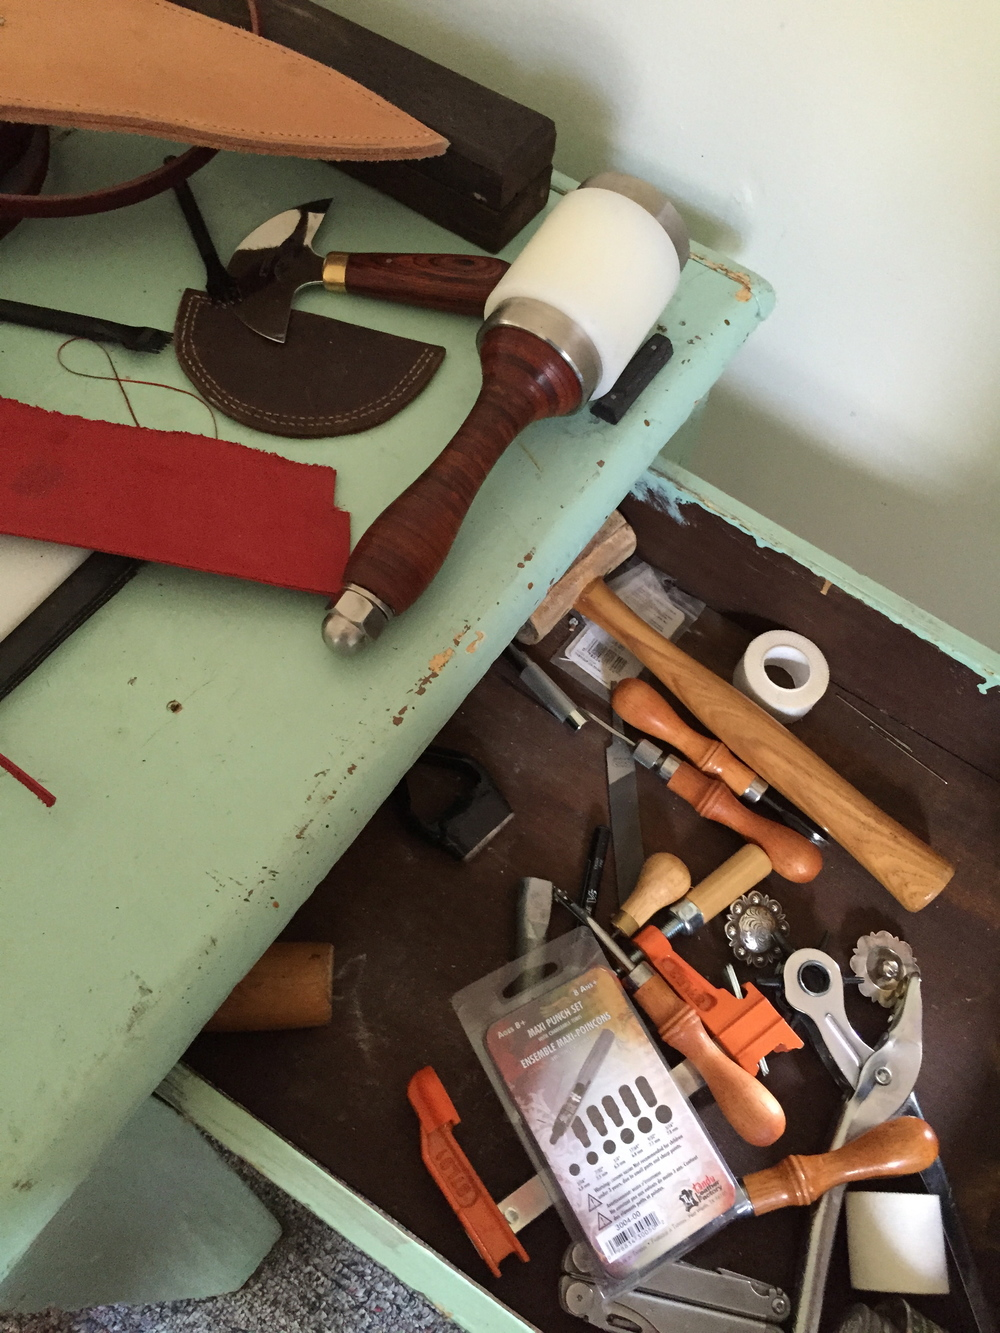 Leather tools and desk